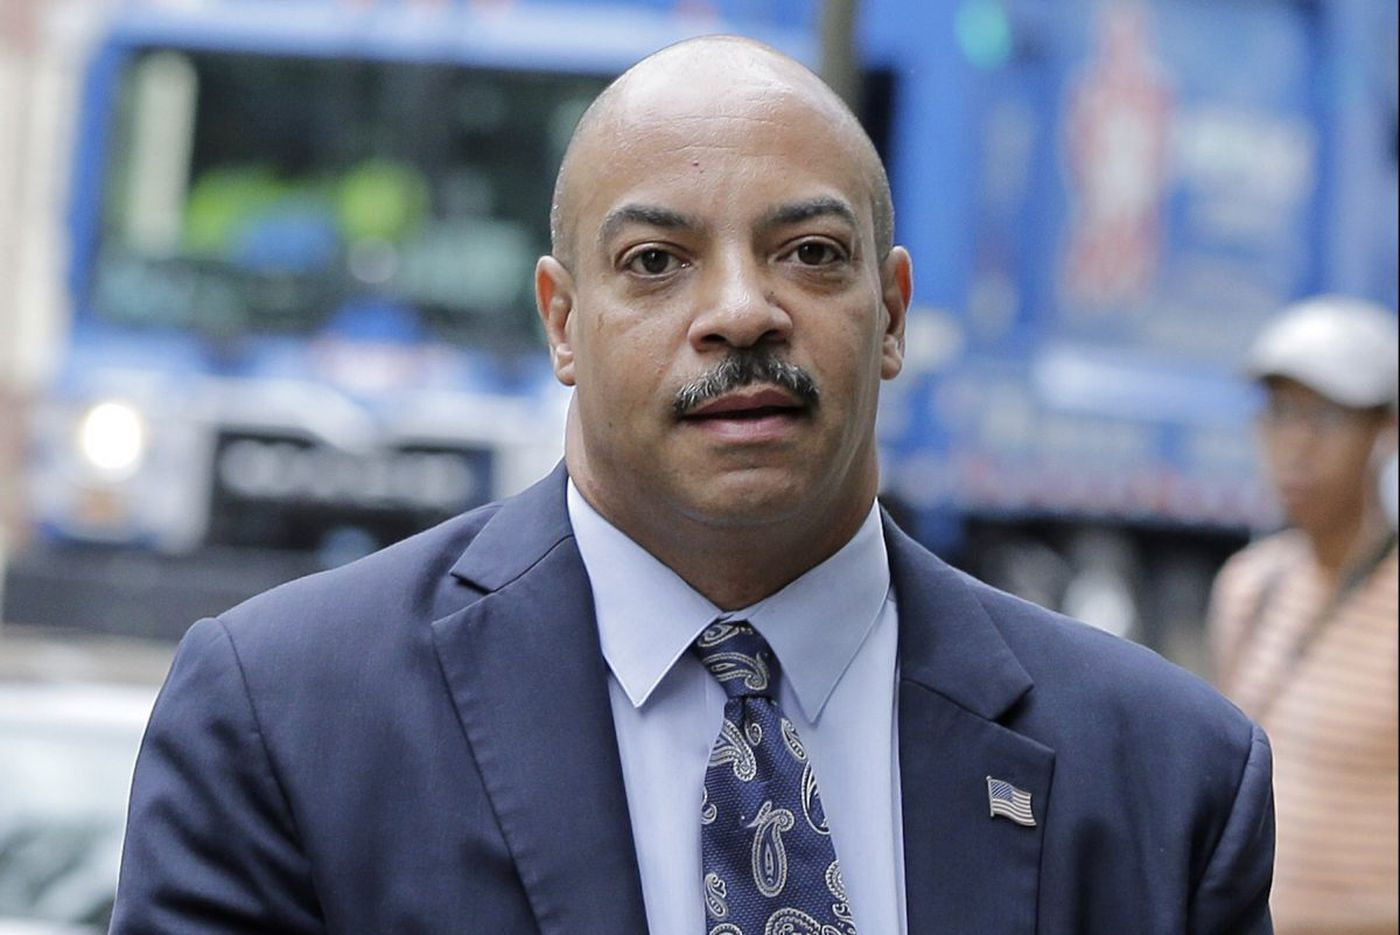 Philly DA Seth Williams pleads guilty, goes to prison